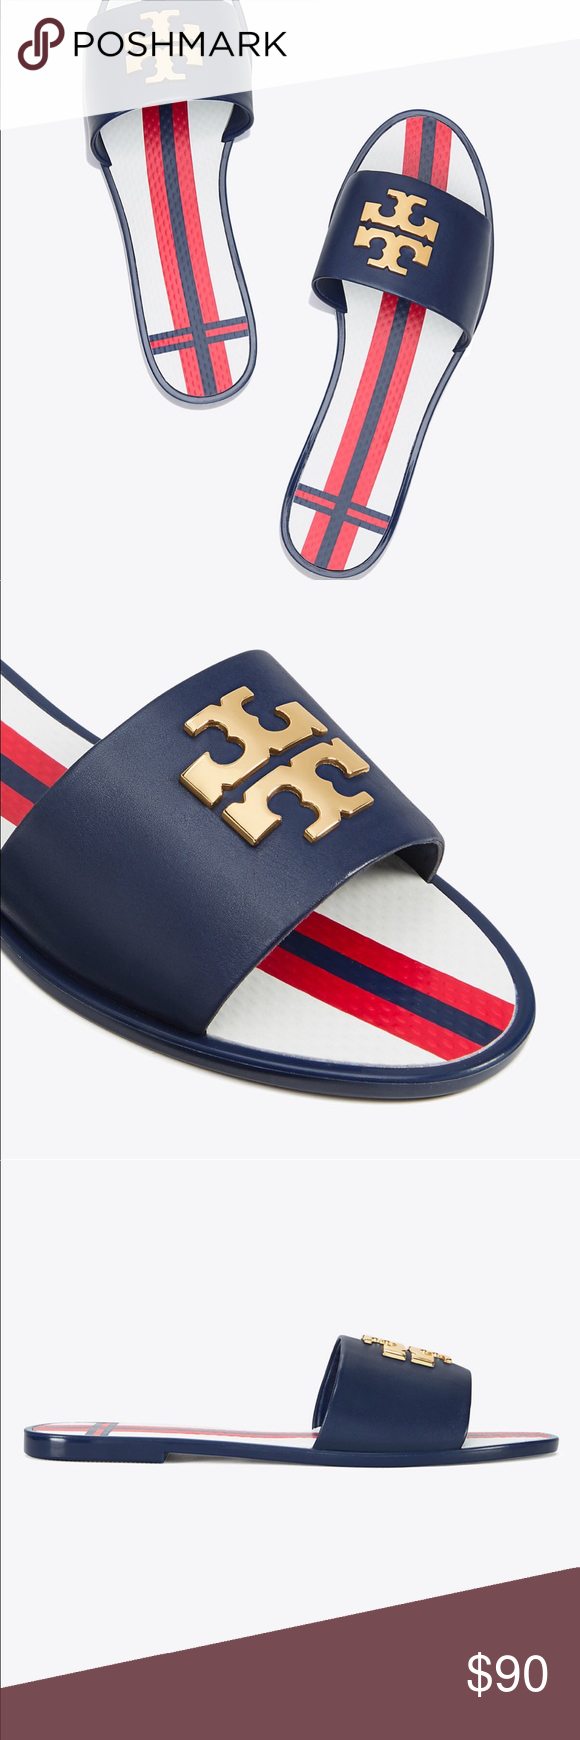 c9b91f38e769da Tory Burch Jelly slides Brand new in box. Size 7. Large gold front logo